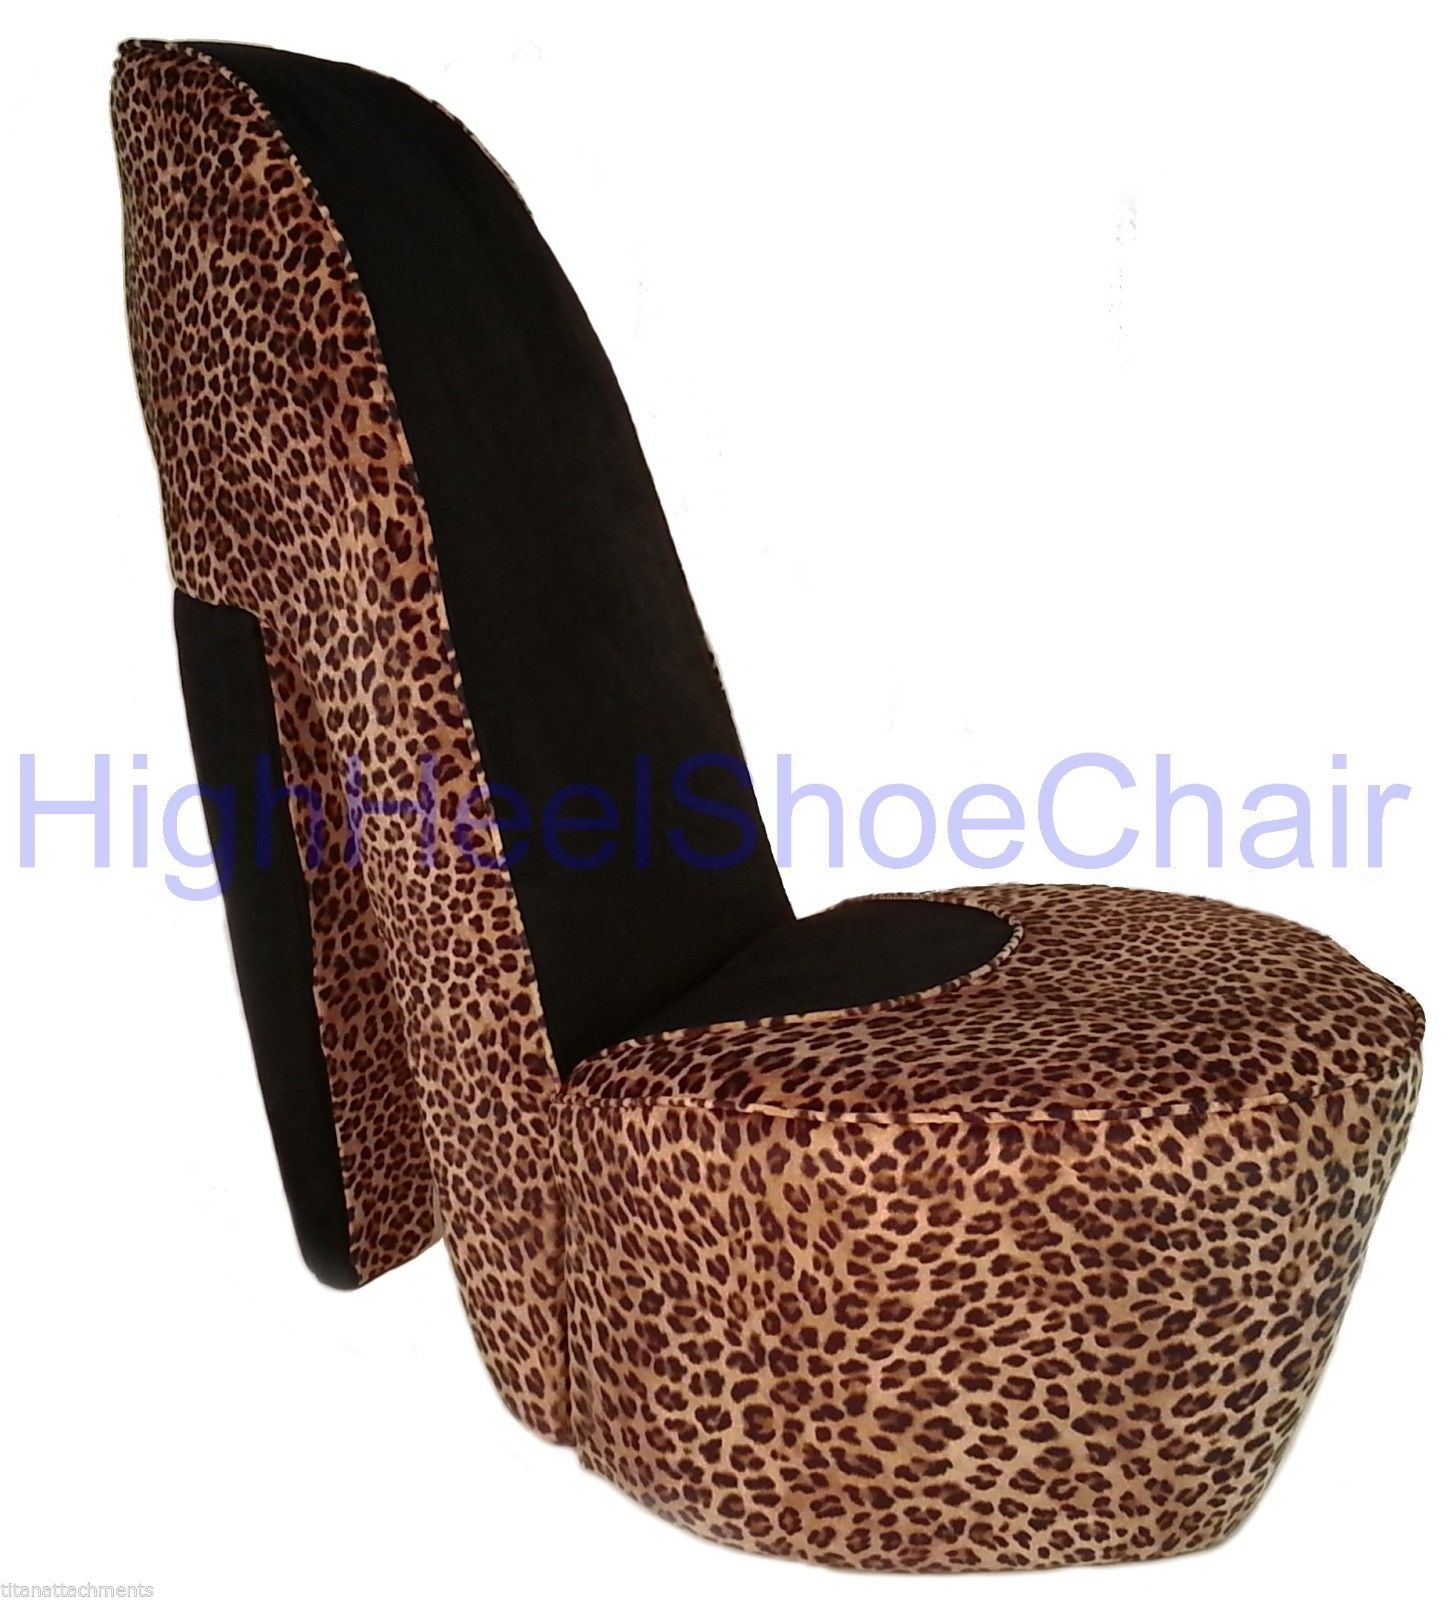 Cheetah Print Chair Home Chair Designs Intended For Heel Chair Sofas (View 8 of 15)